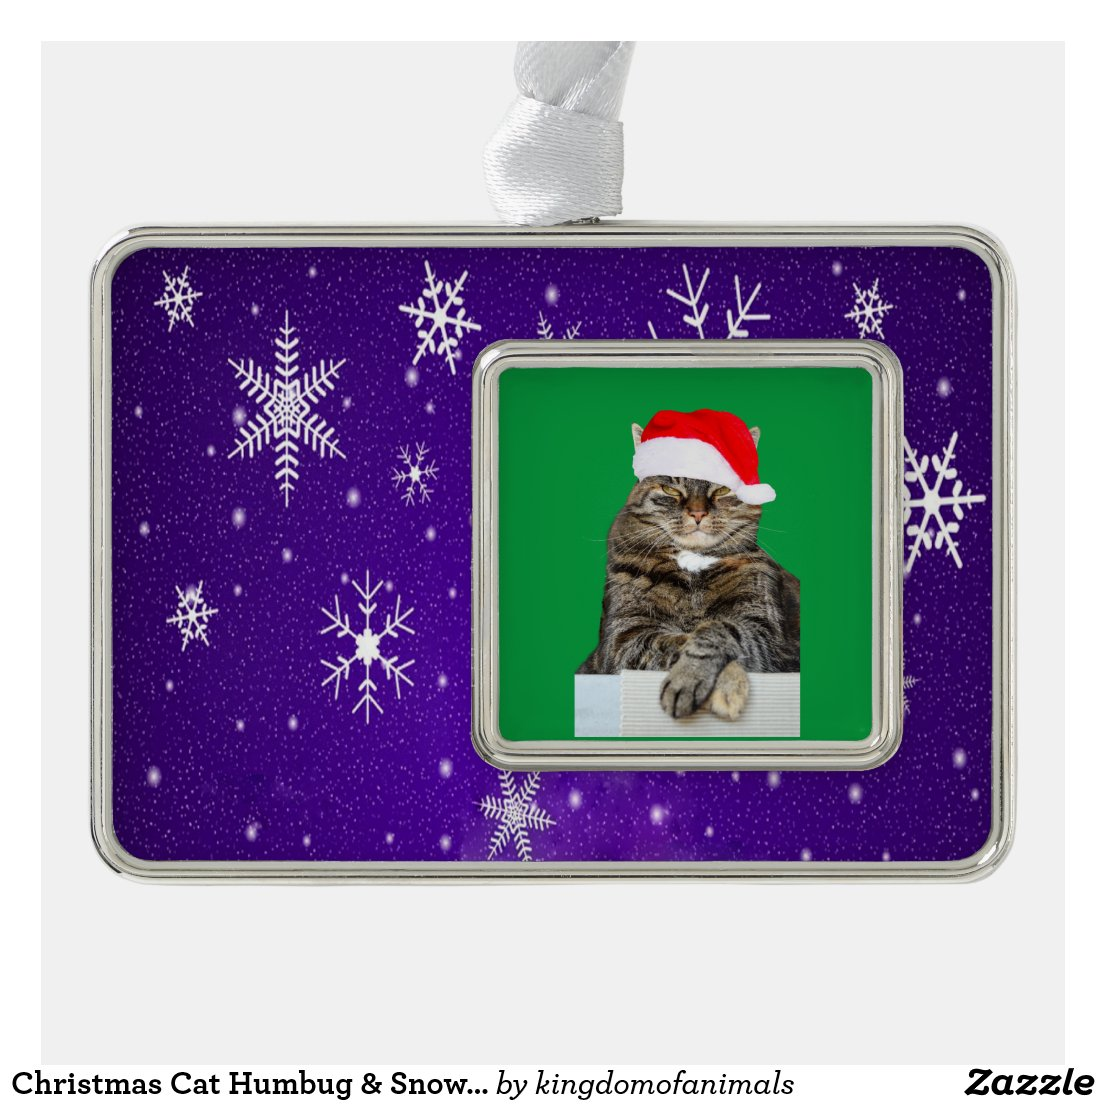 Christmas Cat Humbug & Snow Photo Framed Ornament